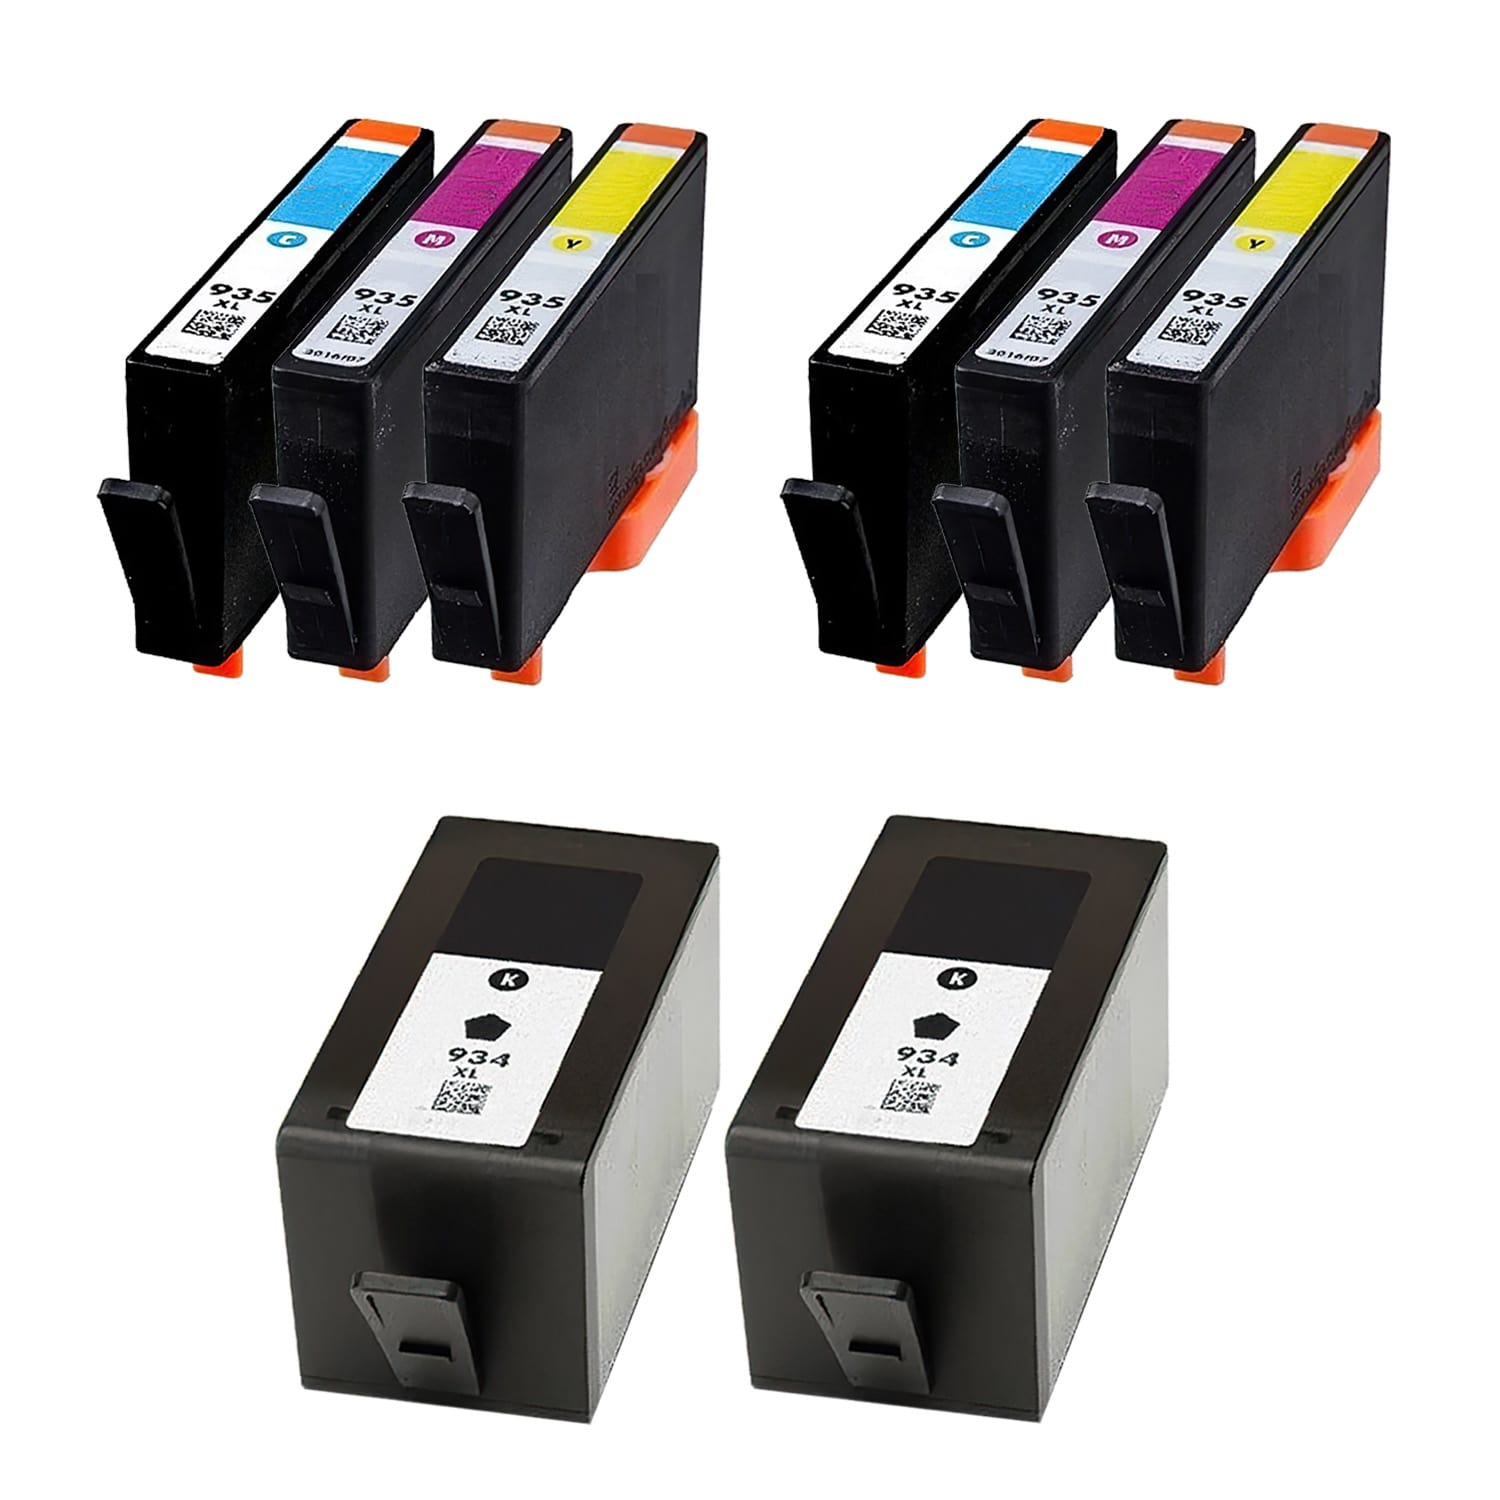 Remanufactured HP 935XL-934XL Inkjet High Capacity Pack - 8 Cartridges